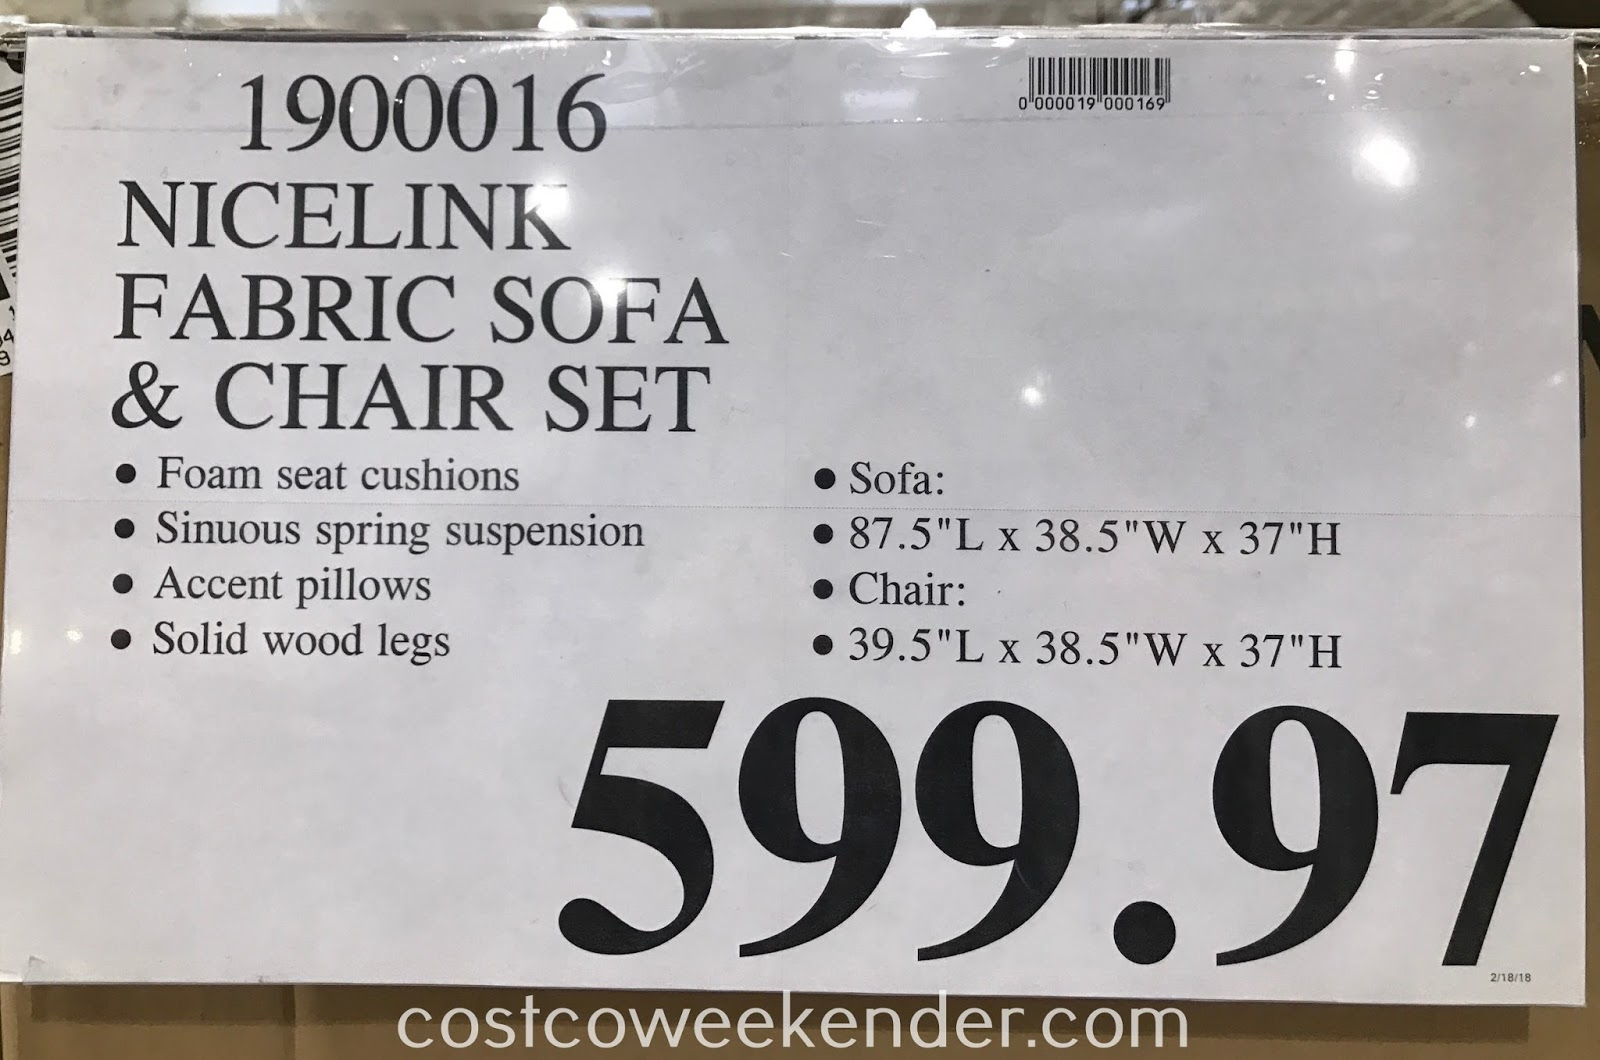 Deal for the NiceLink Fabric Sofa and Chair Set at Costco